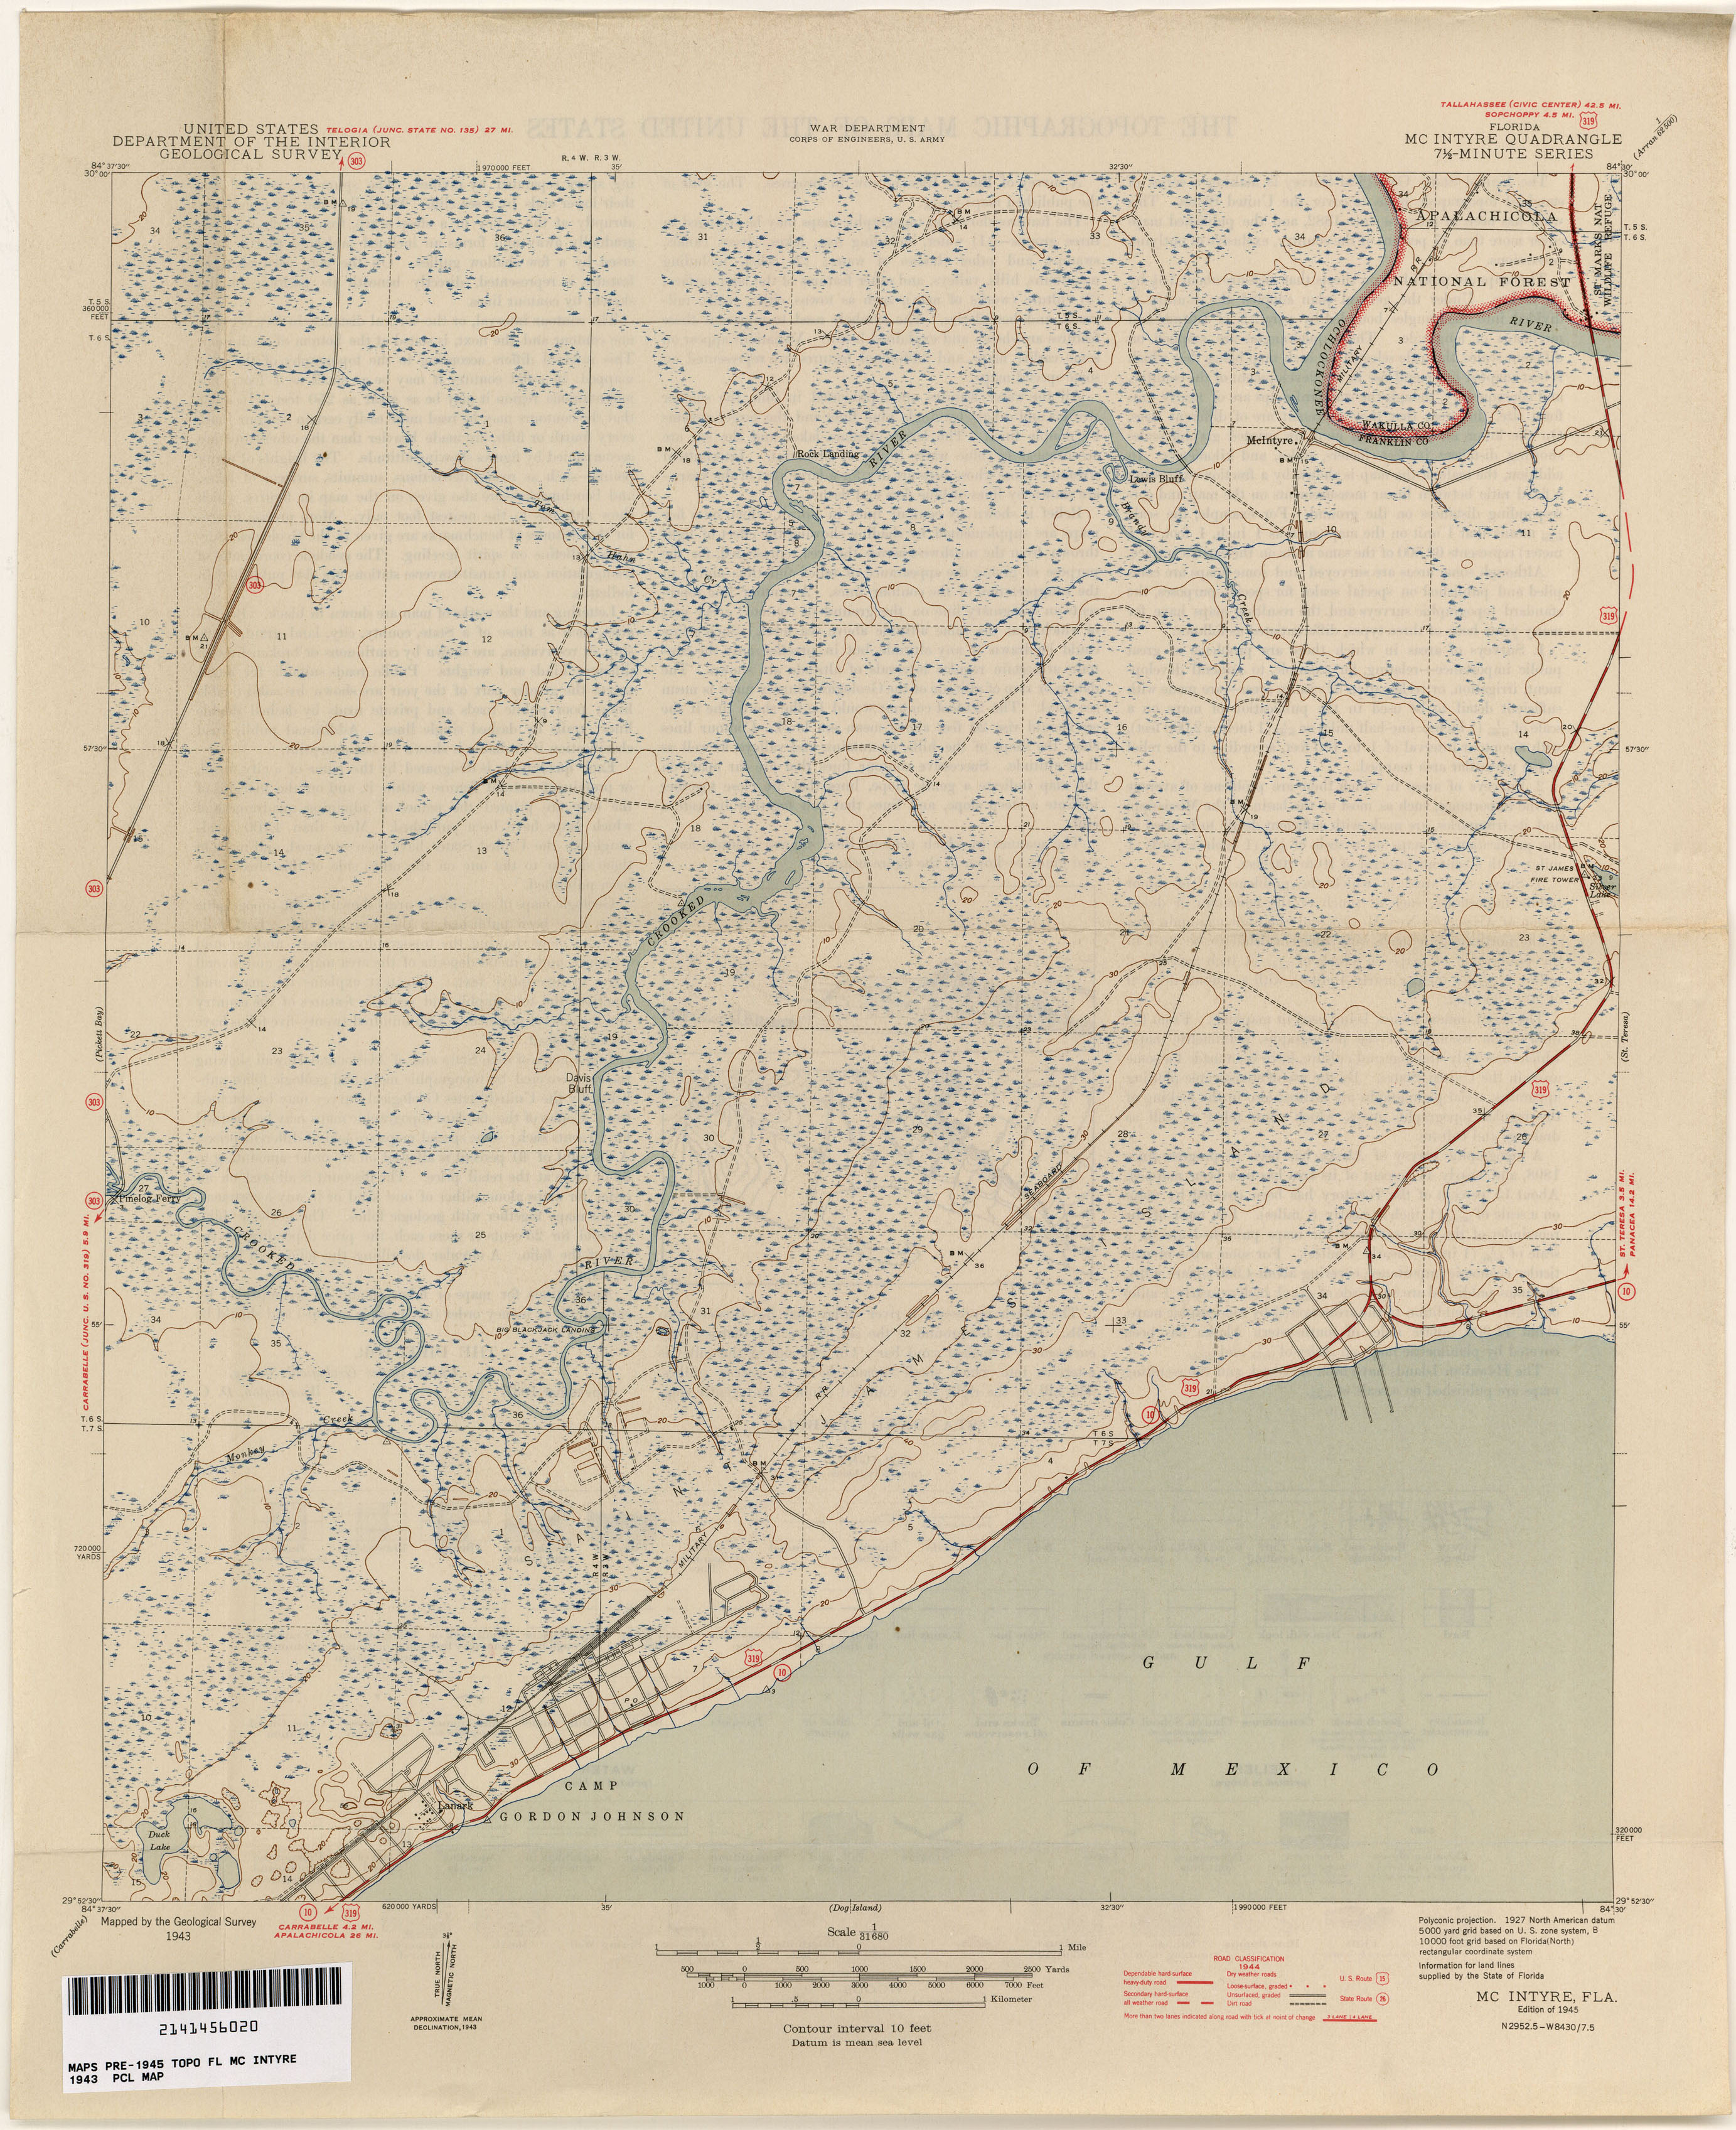 Dog Island Florida Map.Florida Historical Topographic Maps Perry Castaneda Map Collection